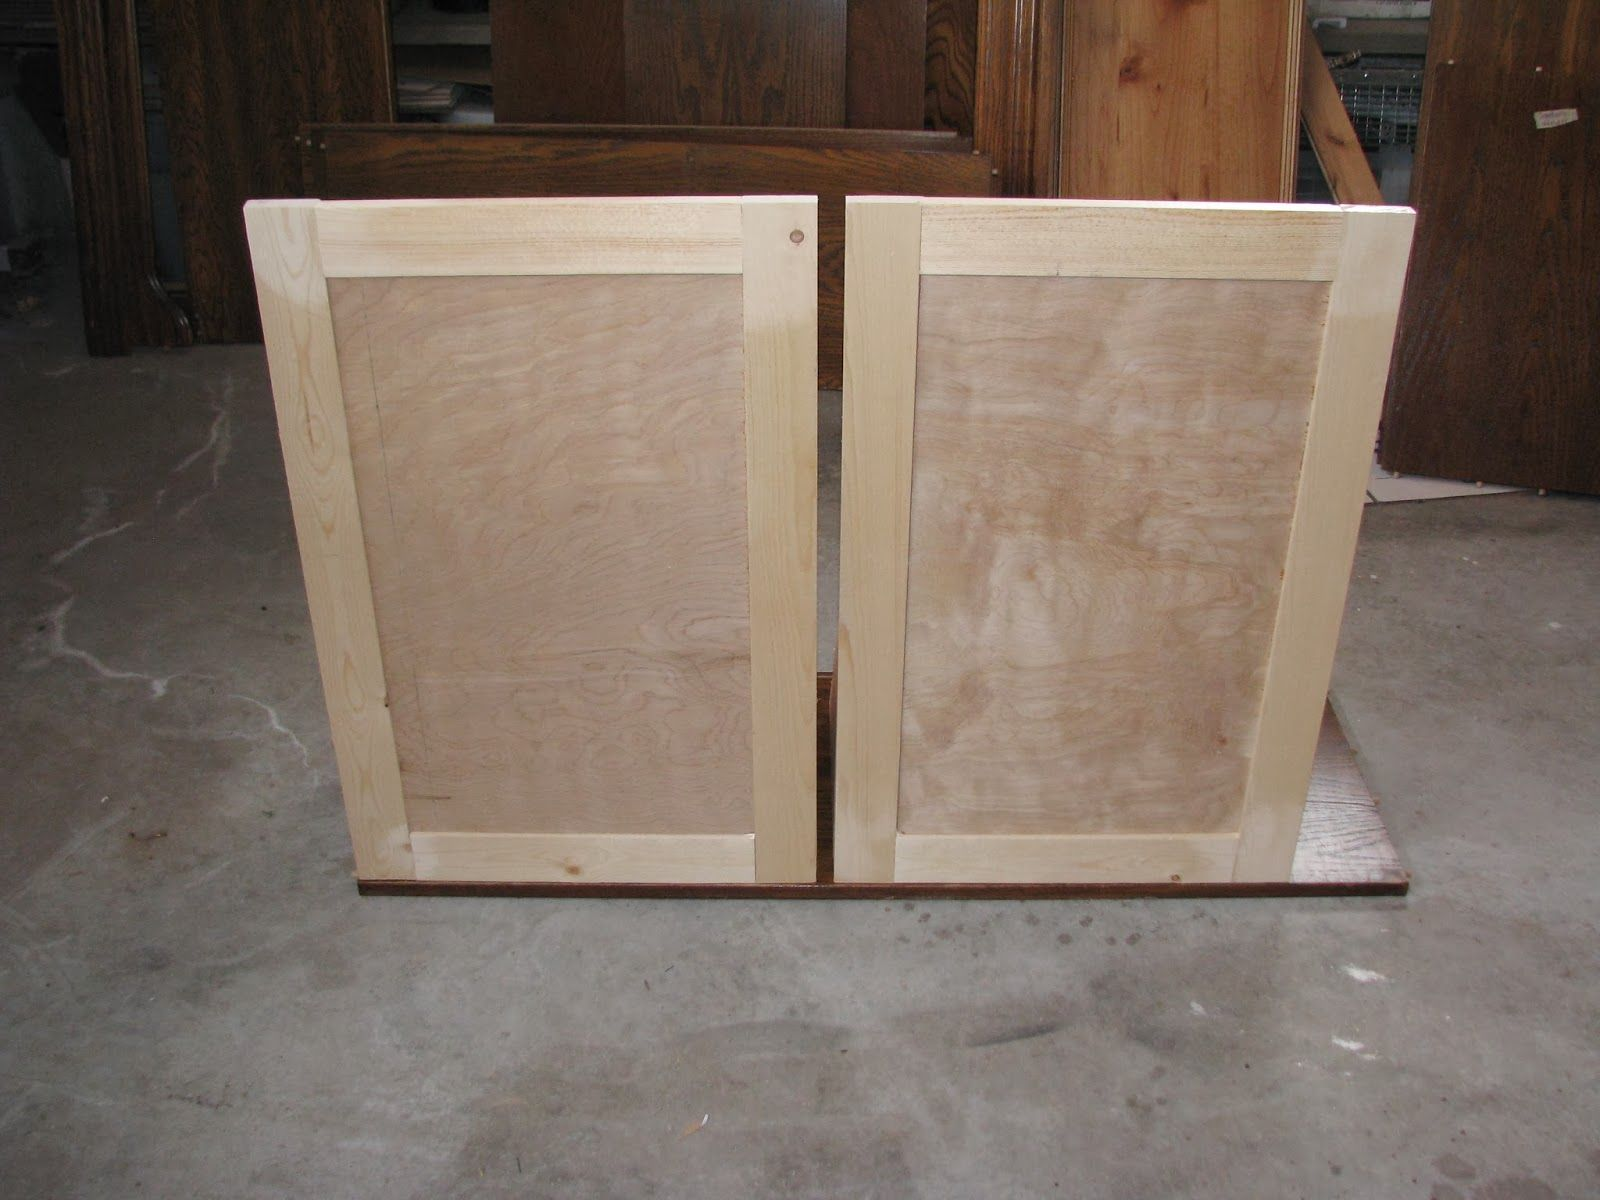 Making cabinet doors using a kreg jig diy furniture fix for Build kitchen cabinets with kreg